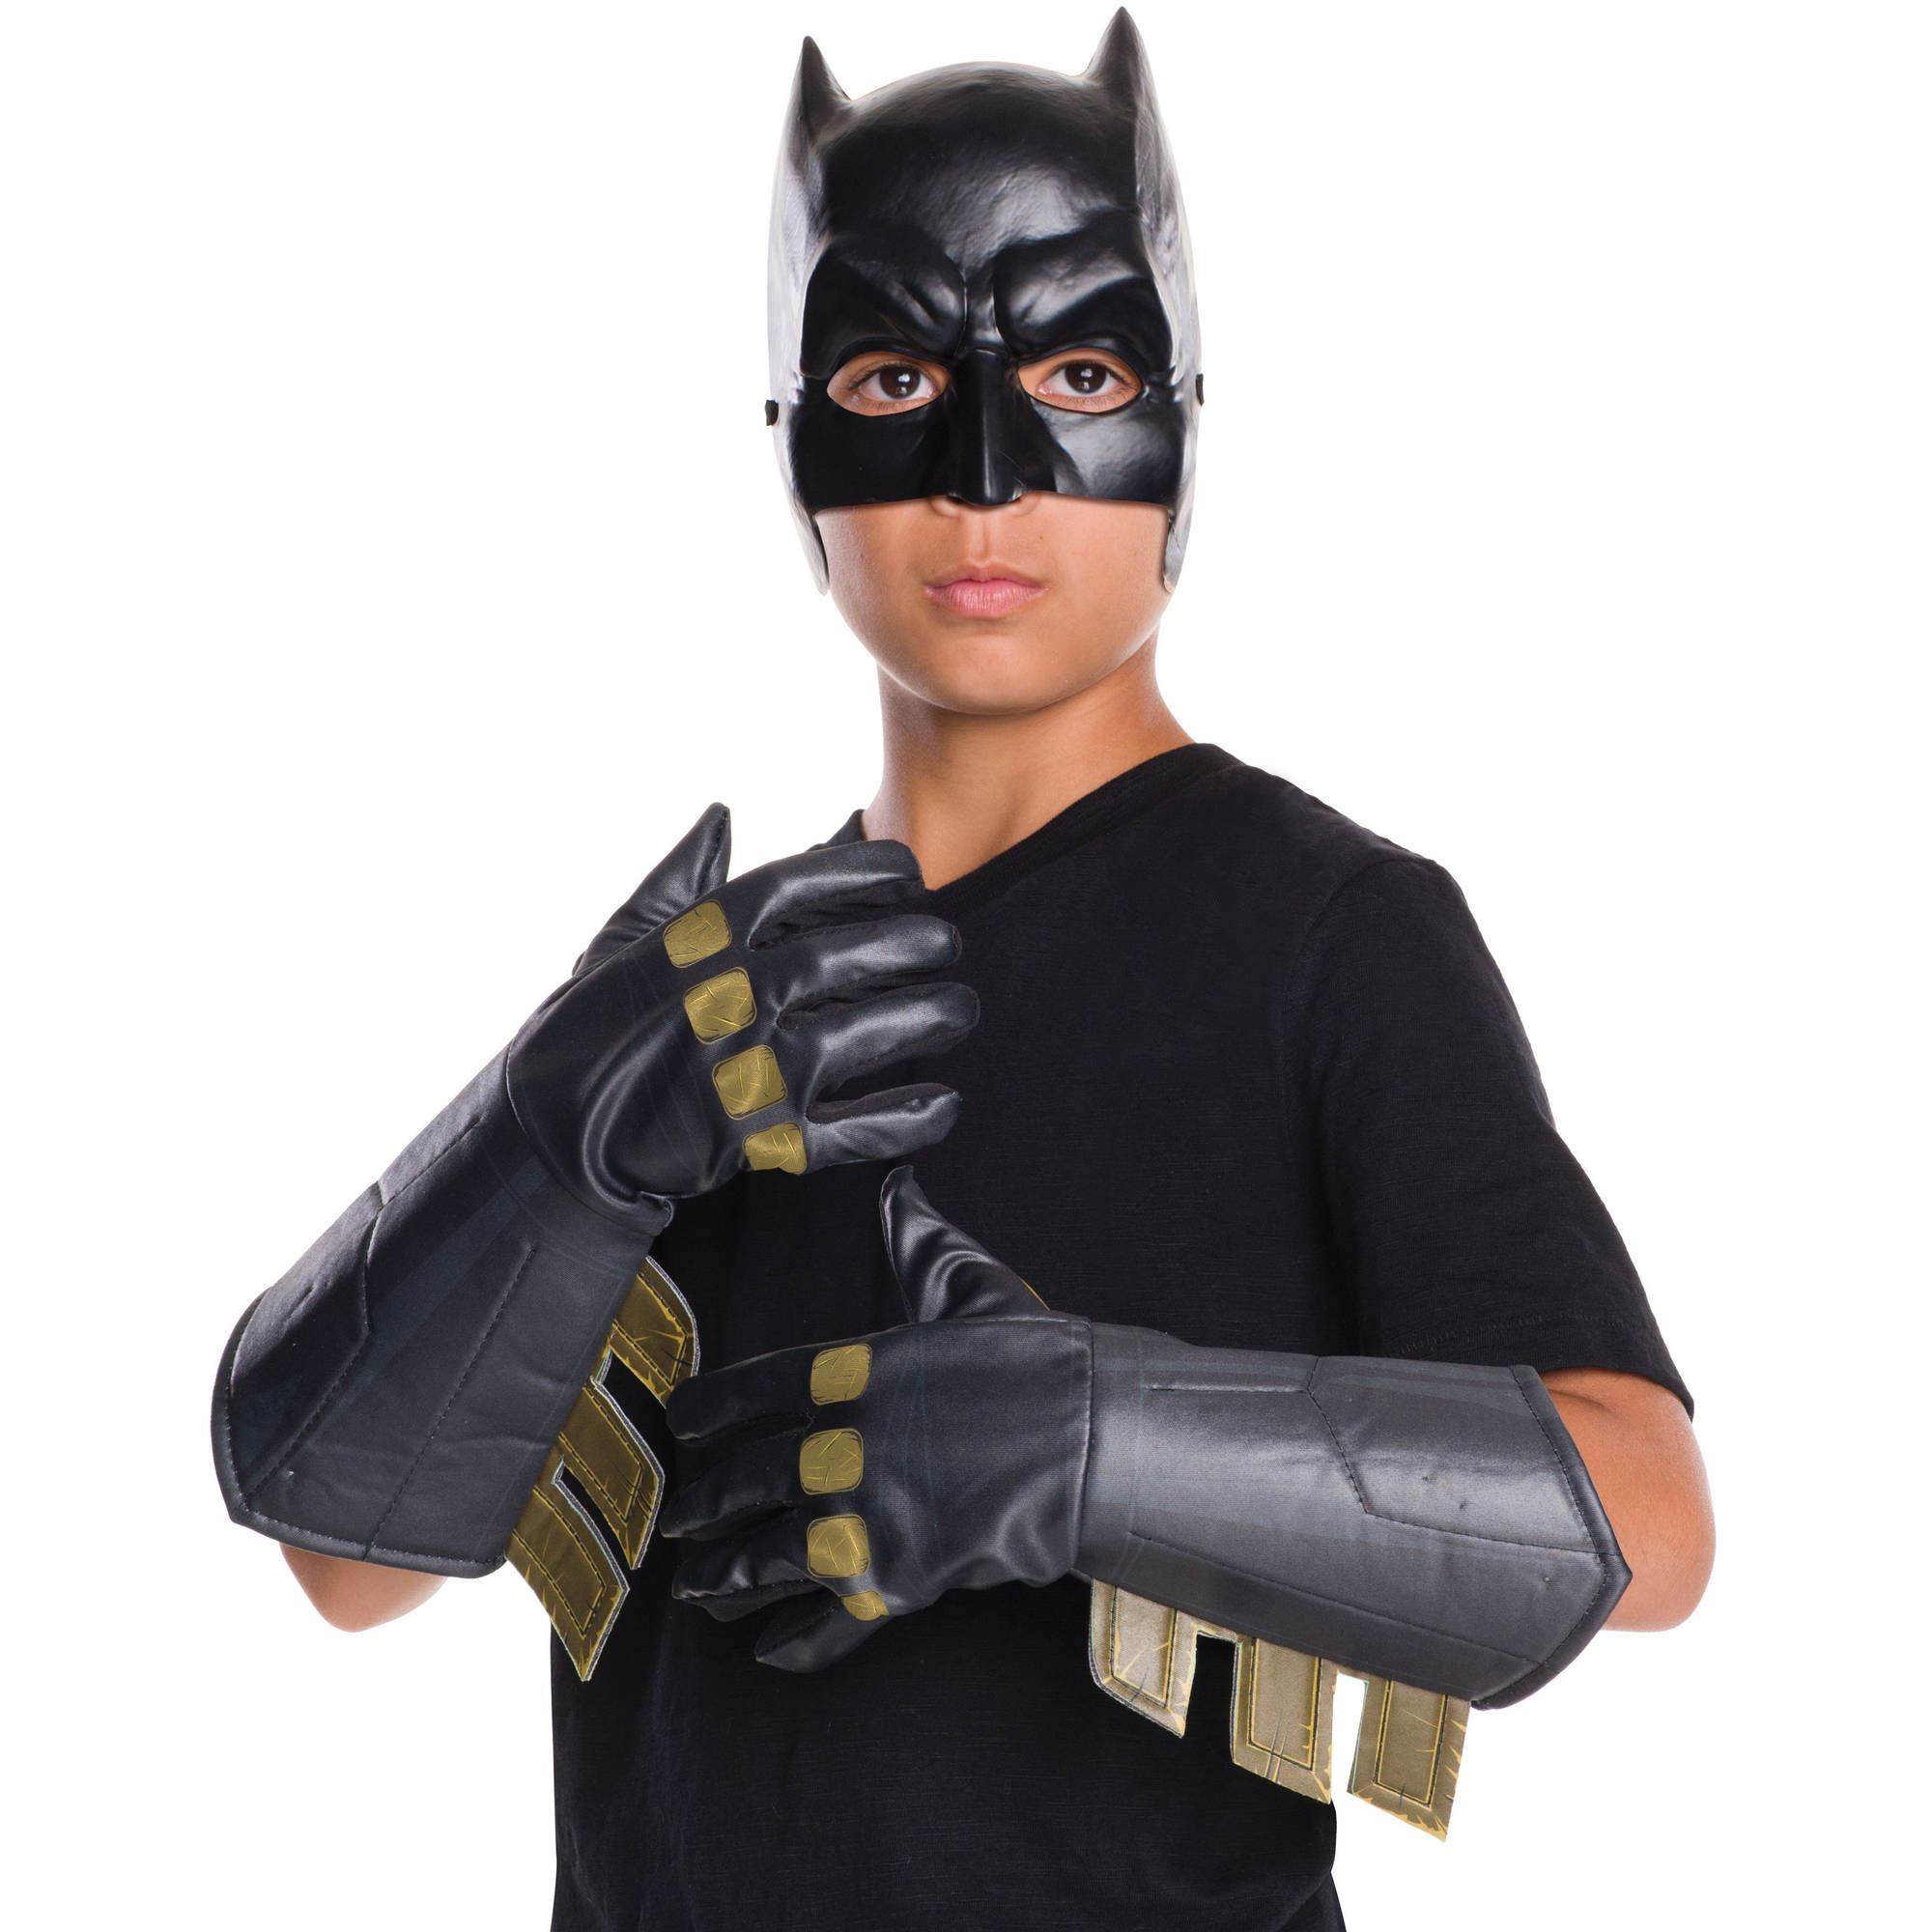 Batman Child's Gauntlet Costume Accessory, One Size Fits Most